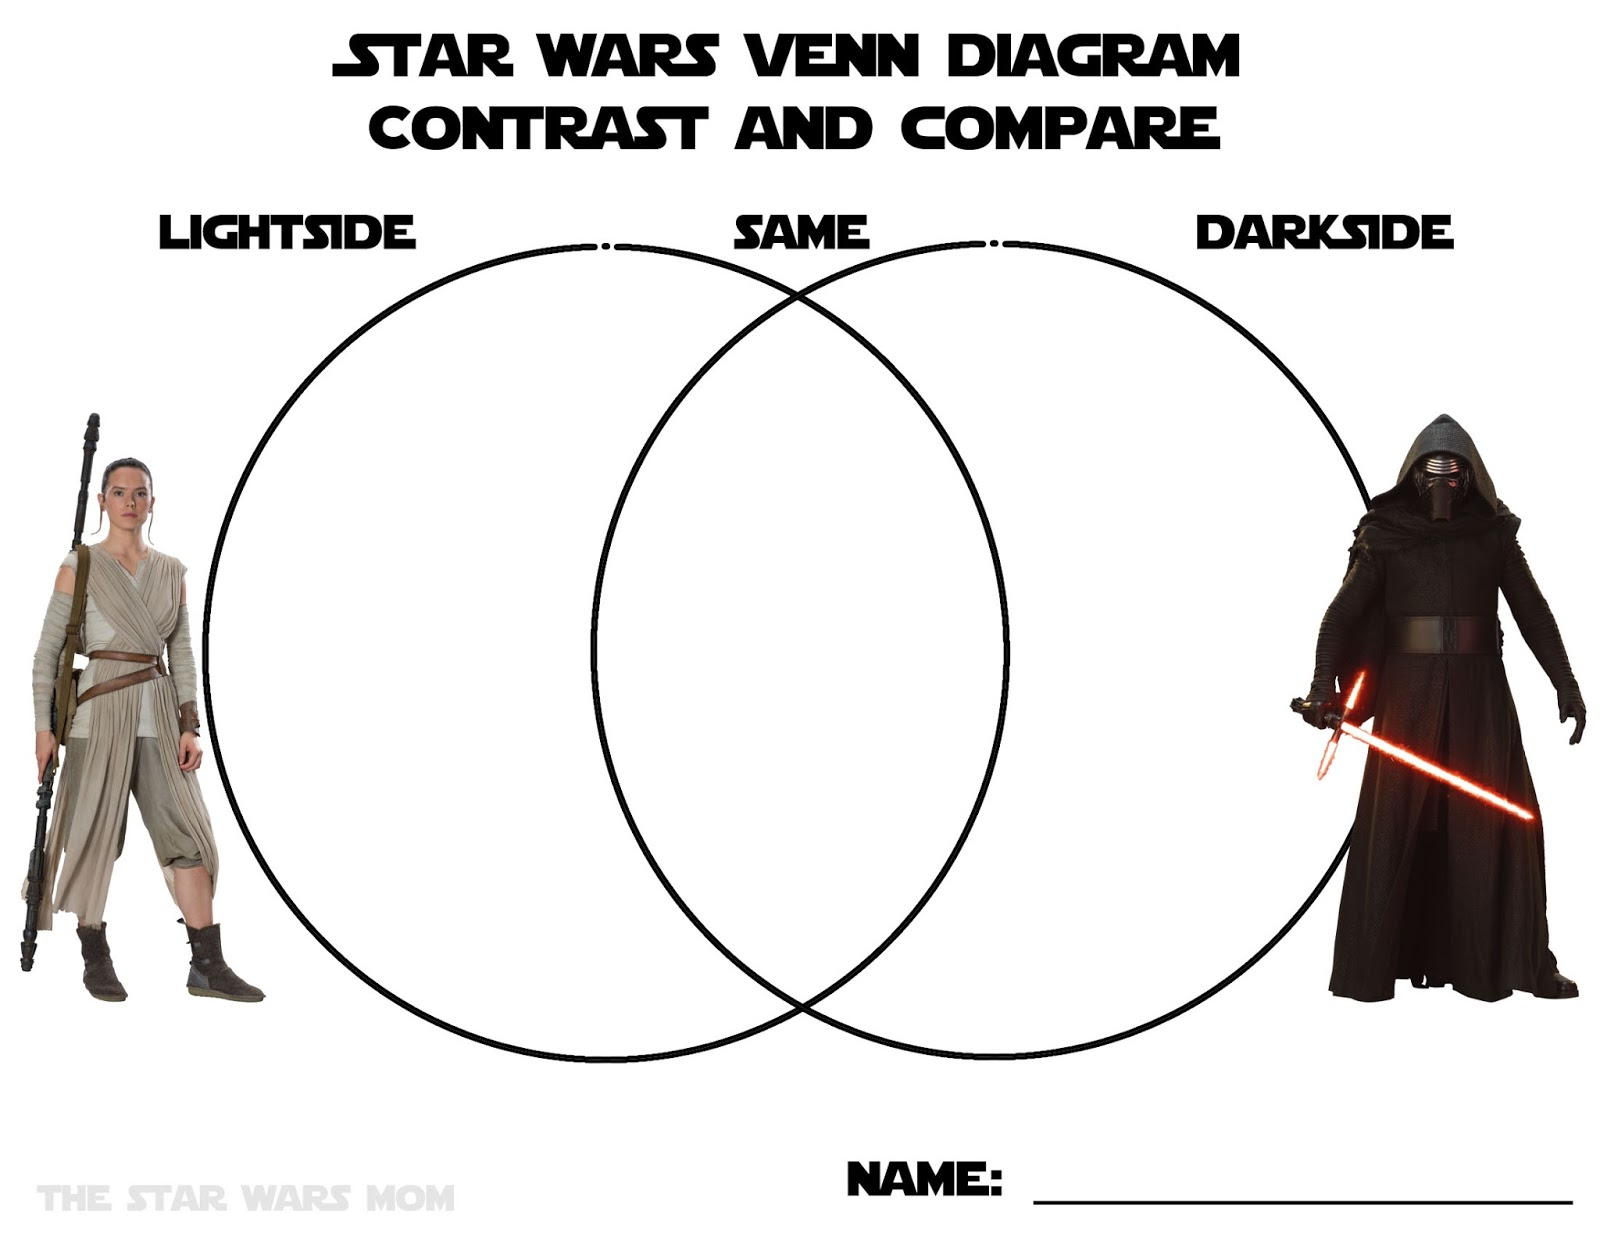 Star Wars Venn Diagram Compare And Contrast Graphic Organizer - Free Printable Compare And Contrast Graphic Organizer